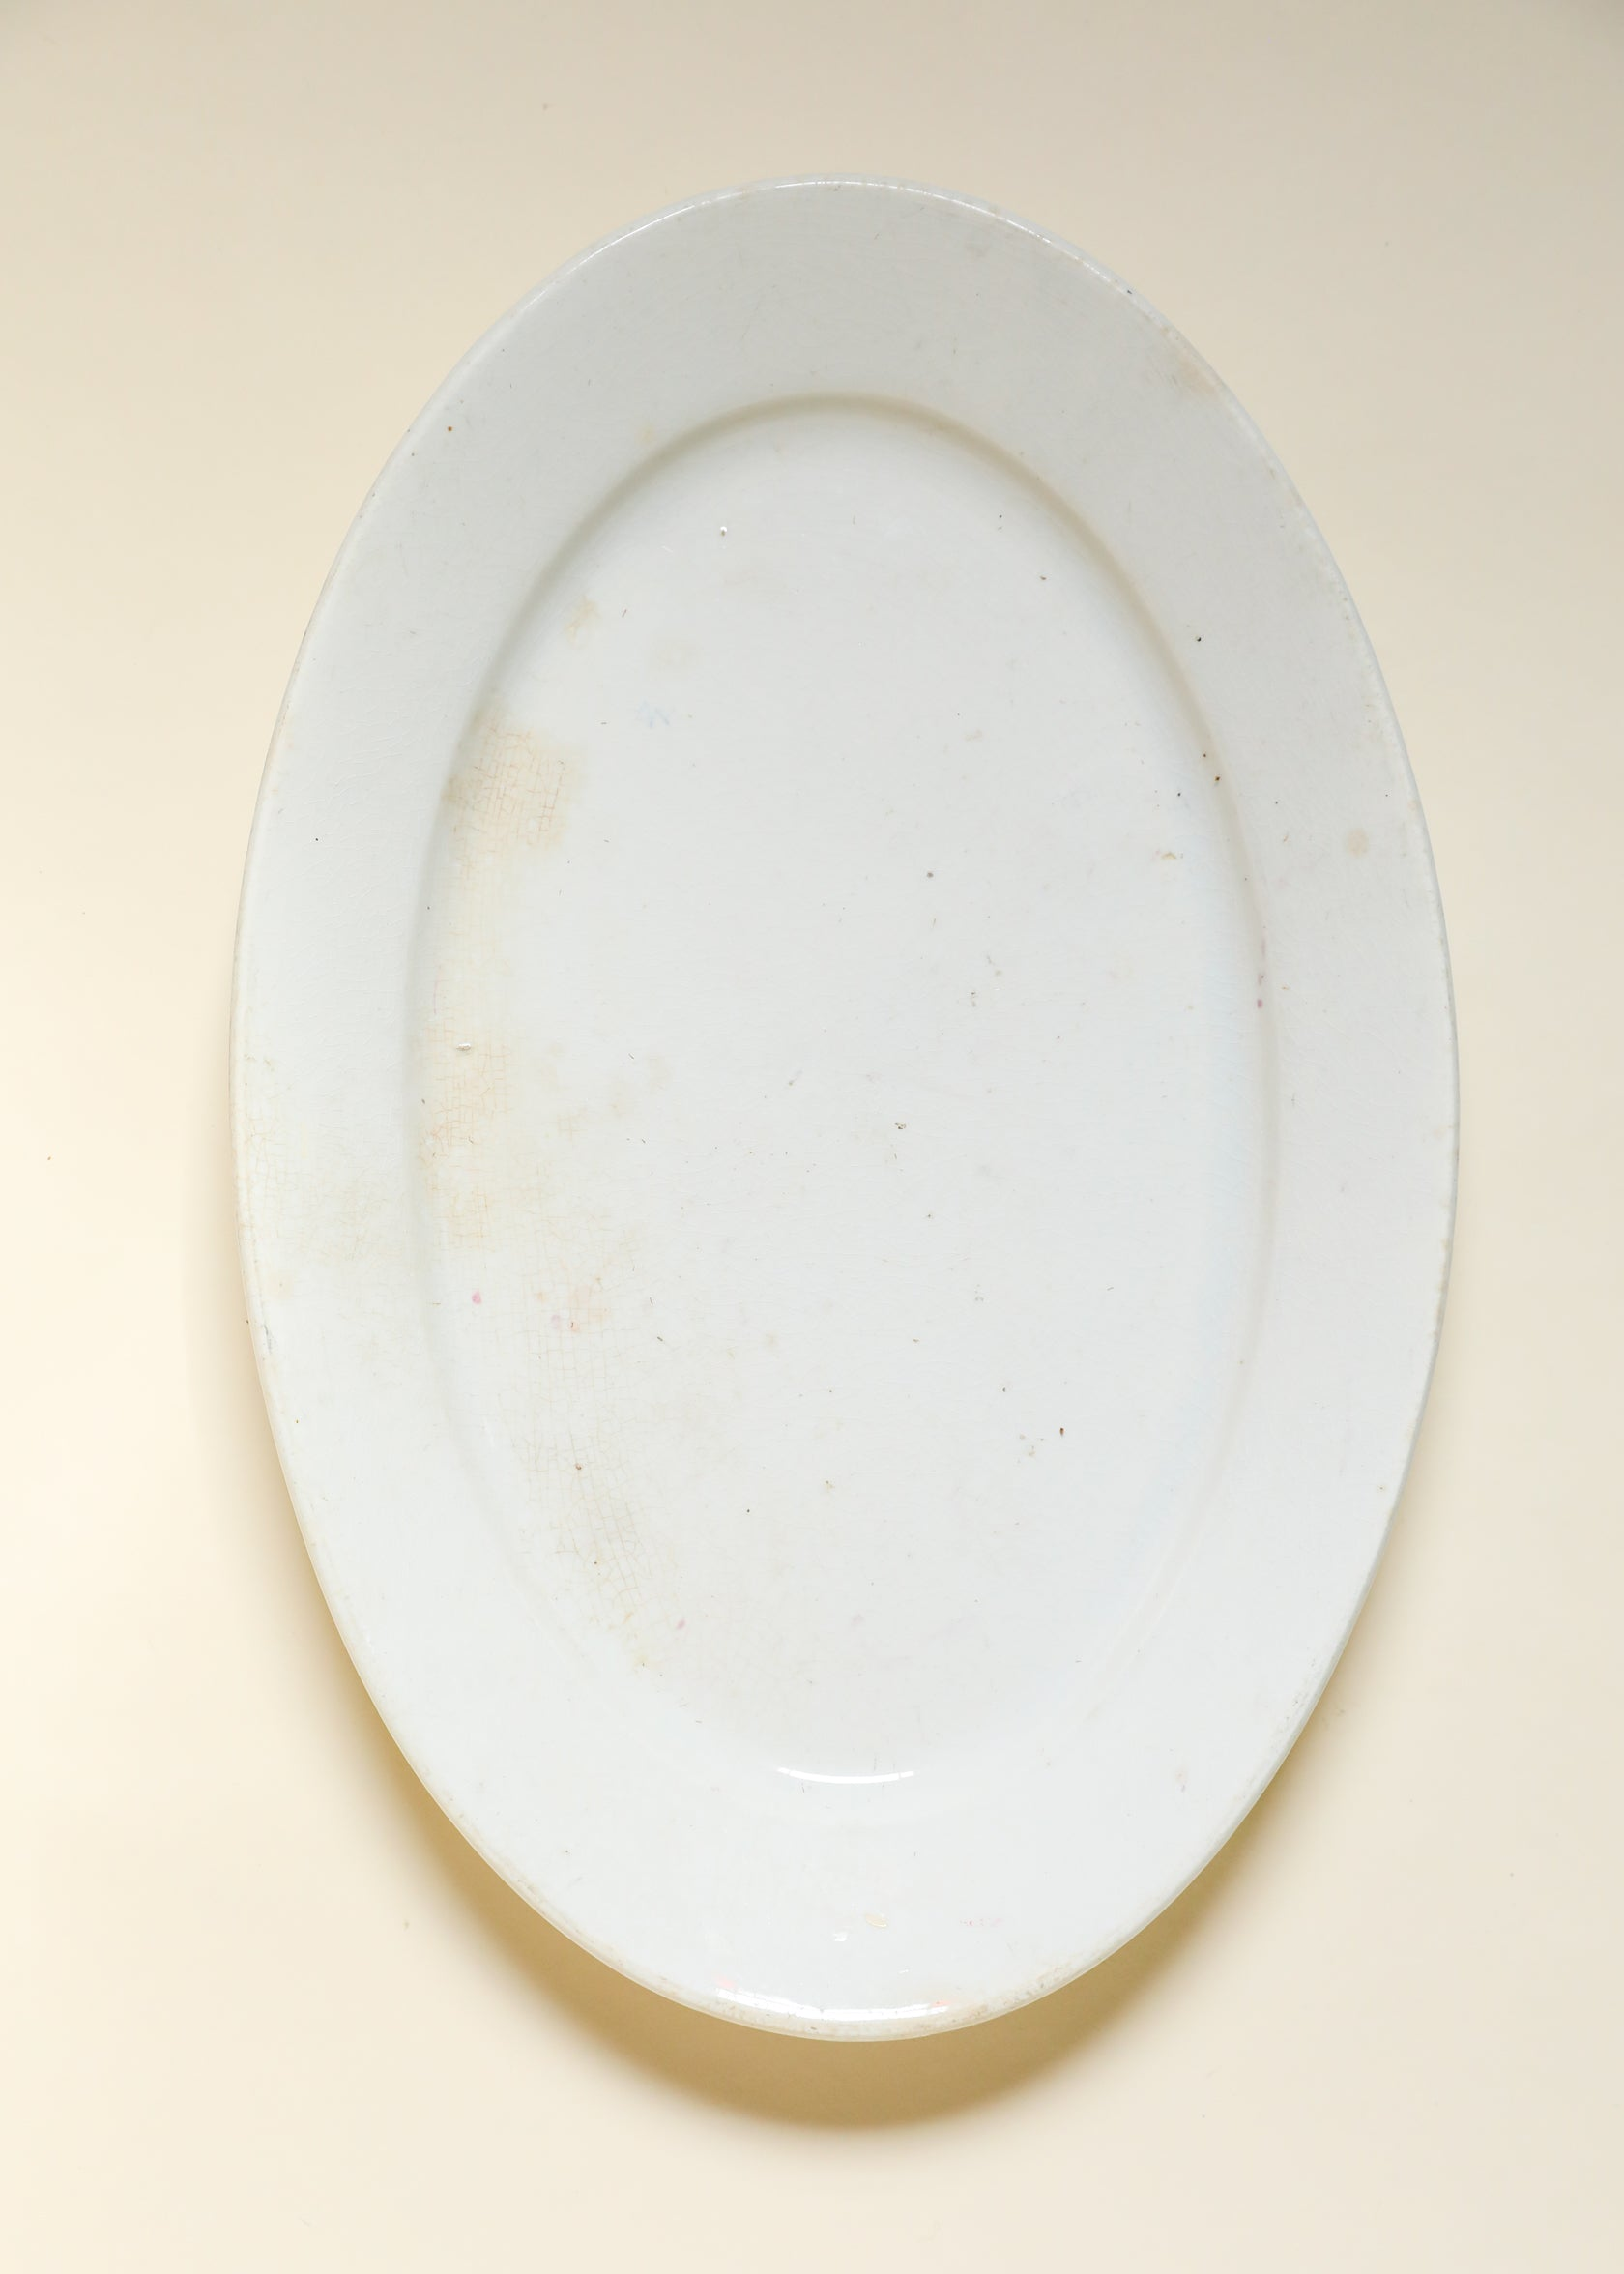 Cook and Hancock Oval Ironstone Serving Platter, late 1880s